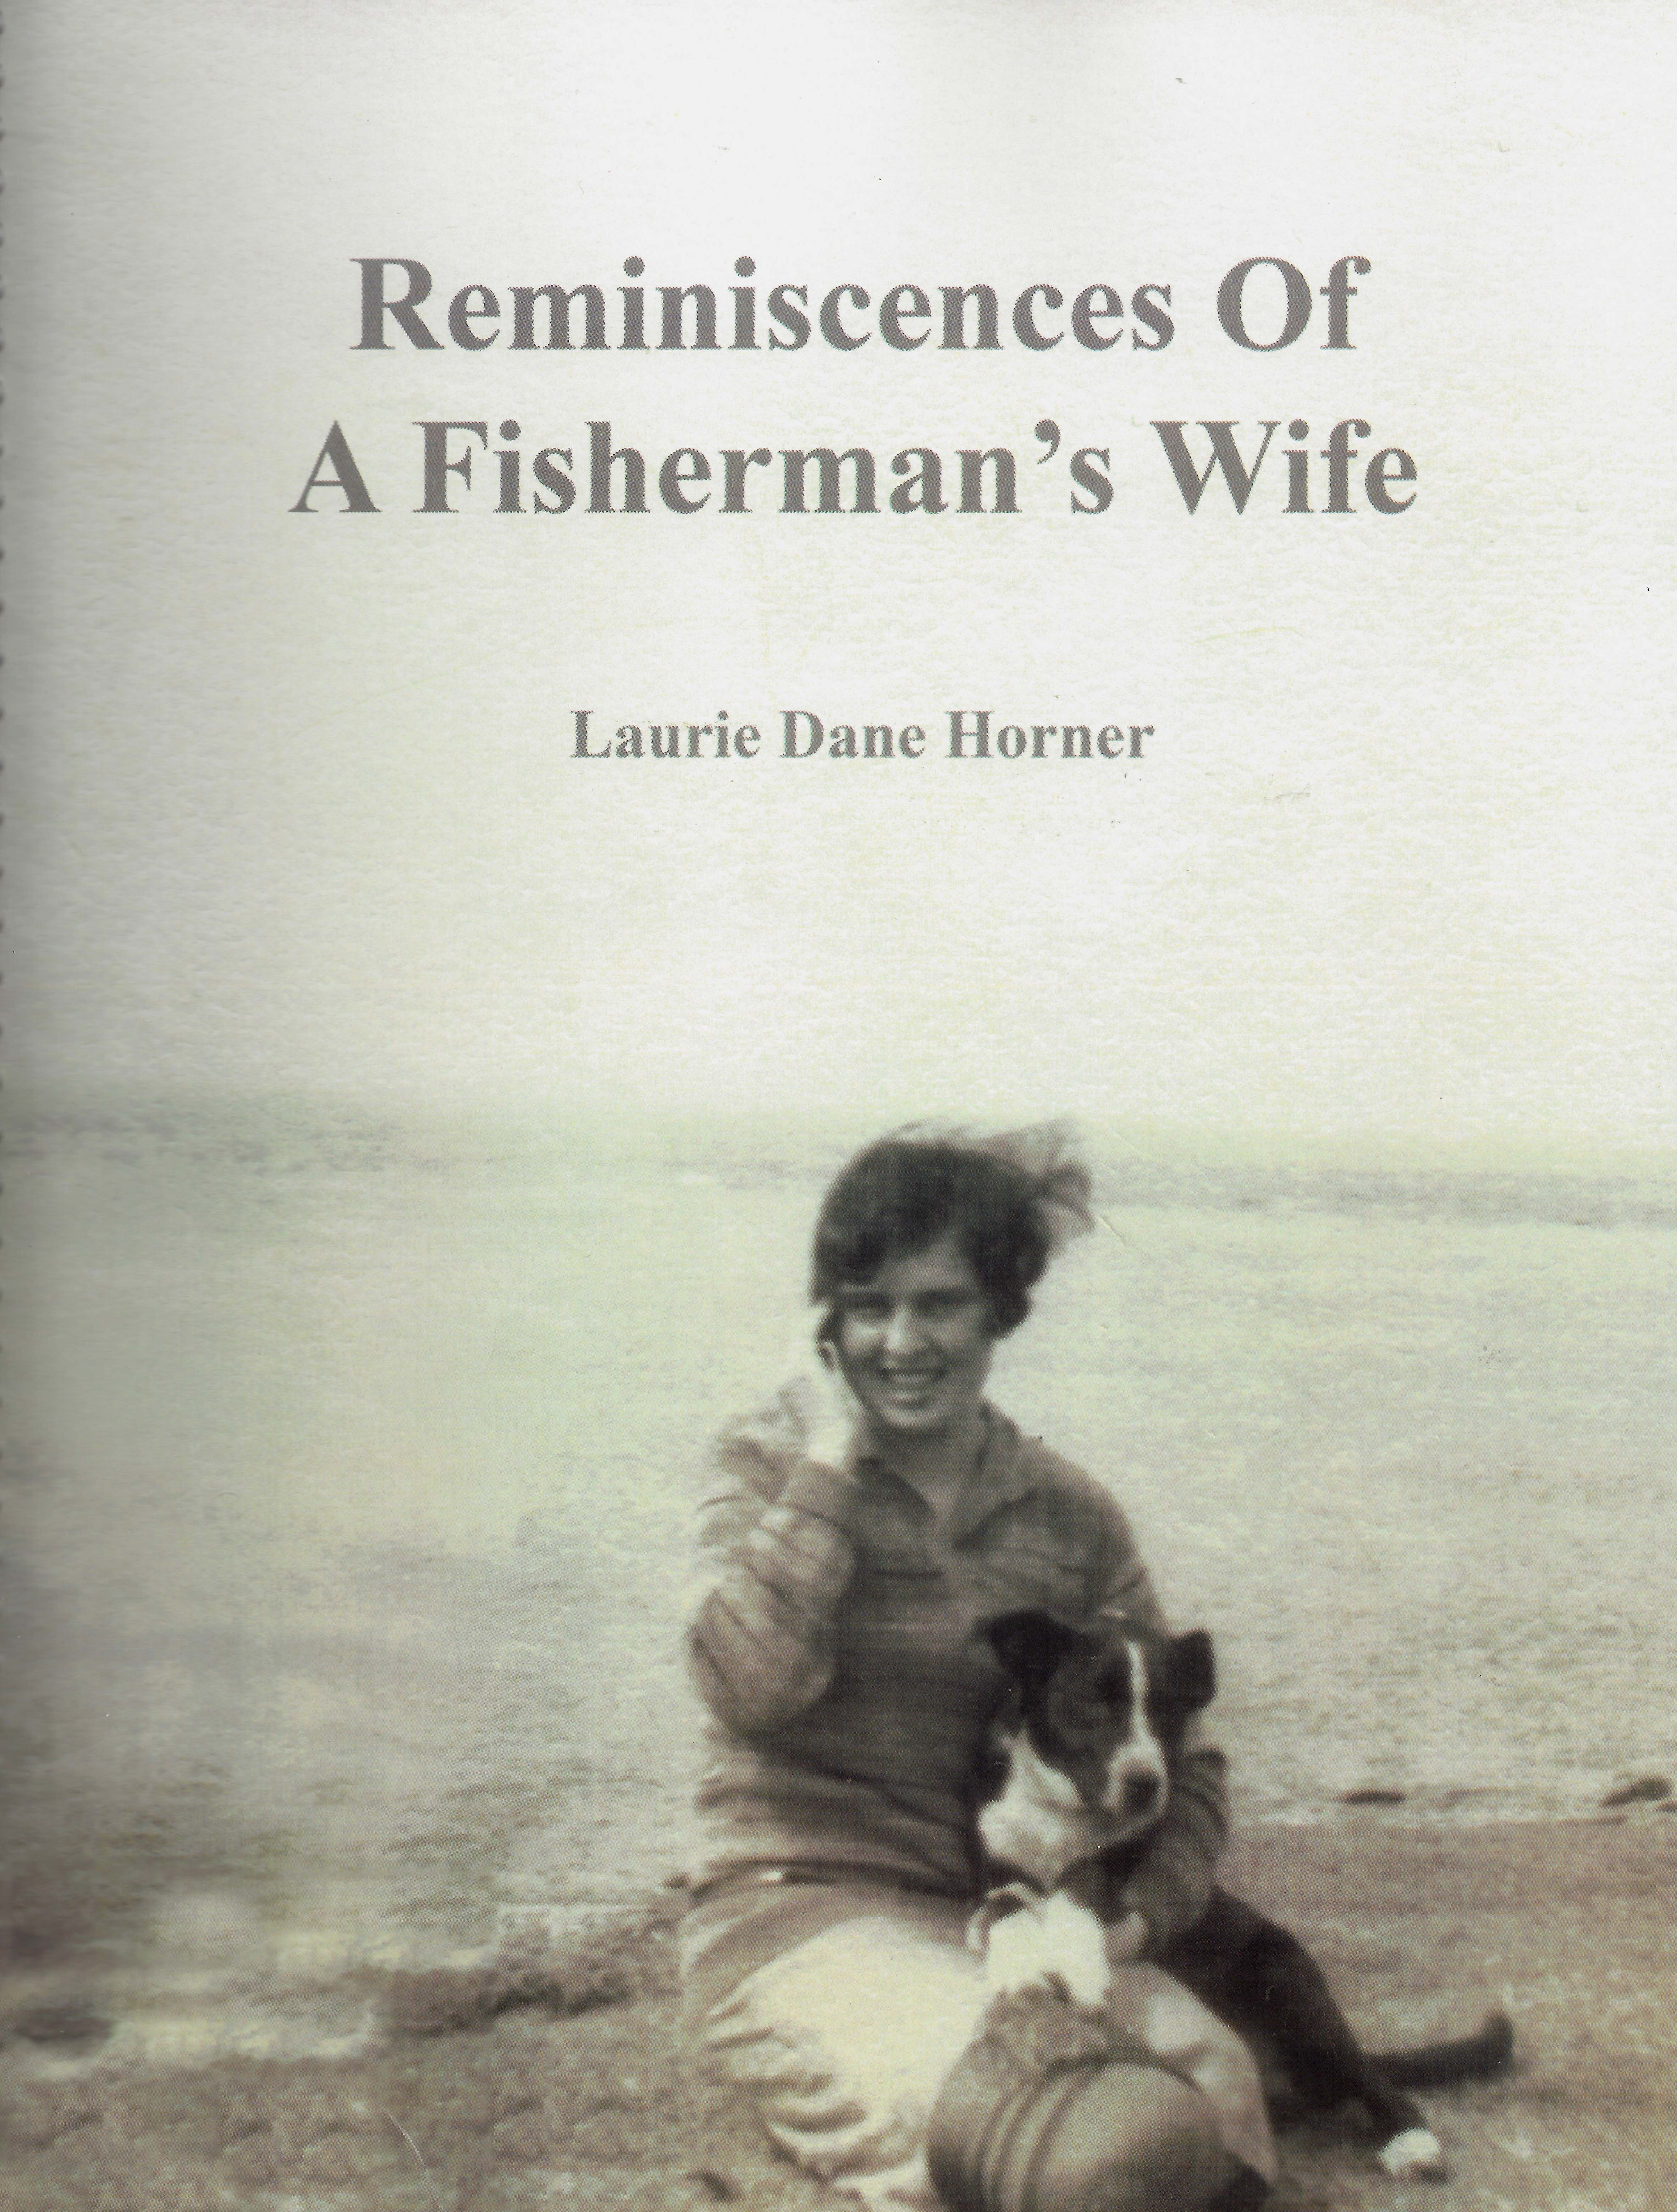 Reminiscences of a Fisherman's Wife